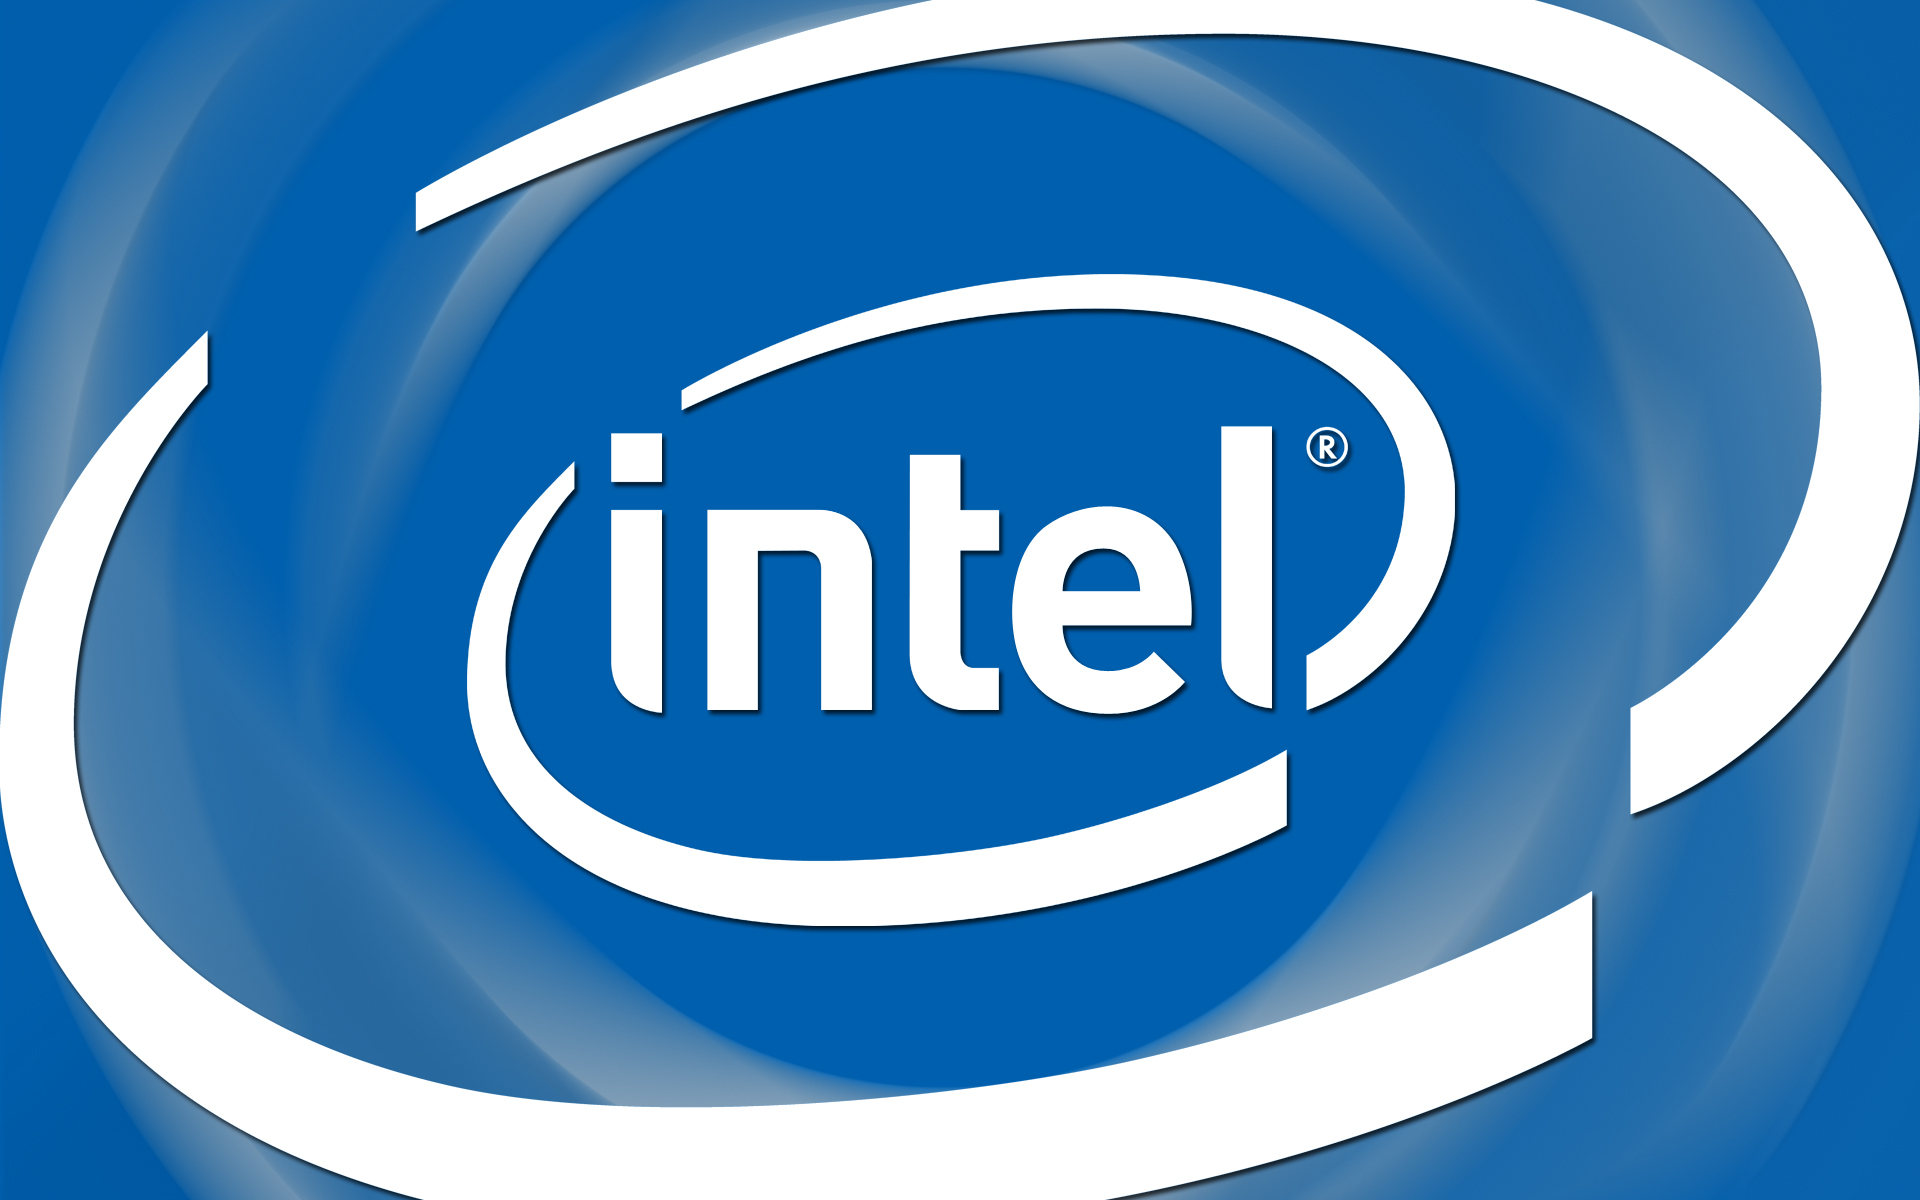 Intel Large Logo Wallpaper Geekpedia 1920x1200